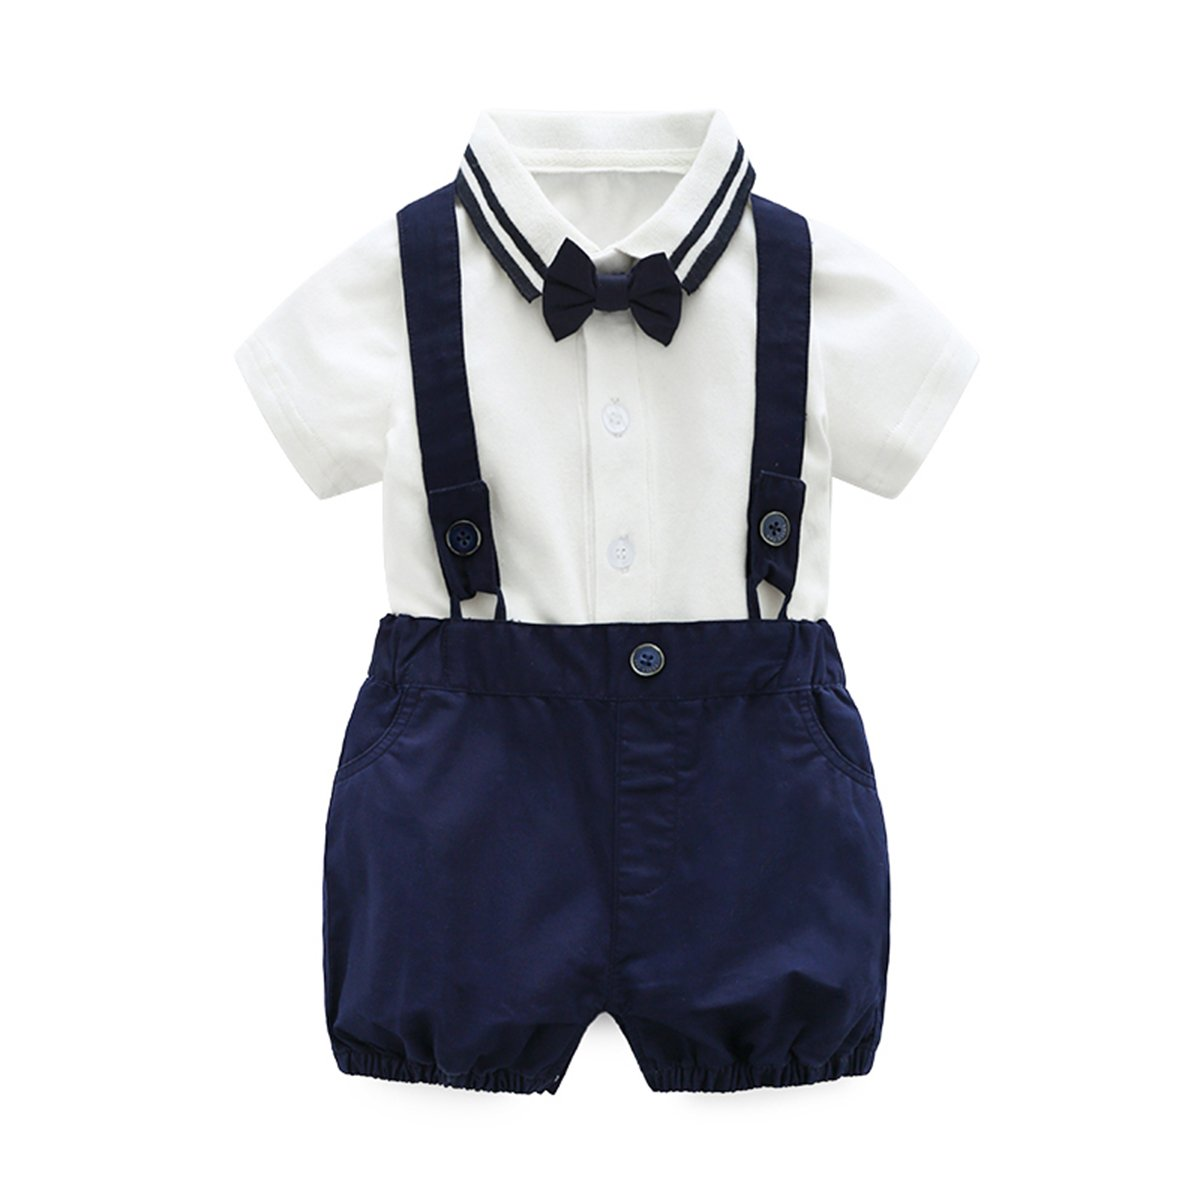 Baby Boys Gentleman Outfits Wedding Suits, Infant Short Sleeve Shirt+Bib Pants+Bow Tie Overalls Clothes Set